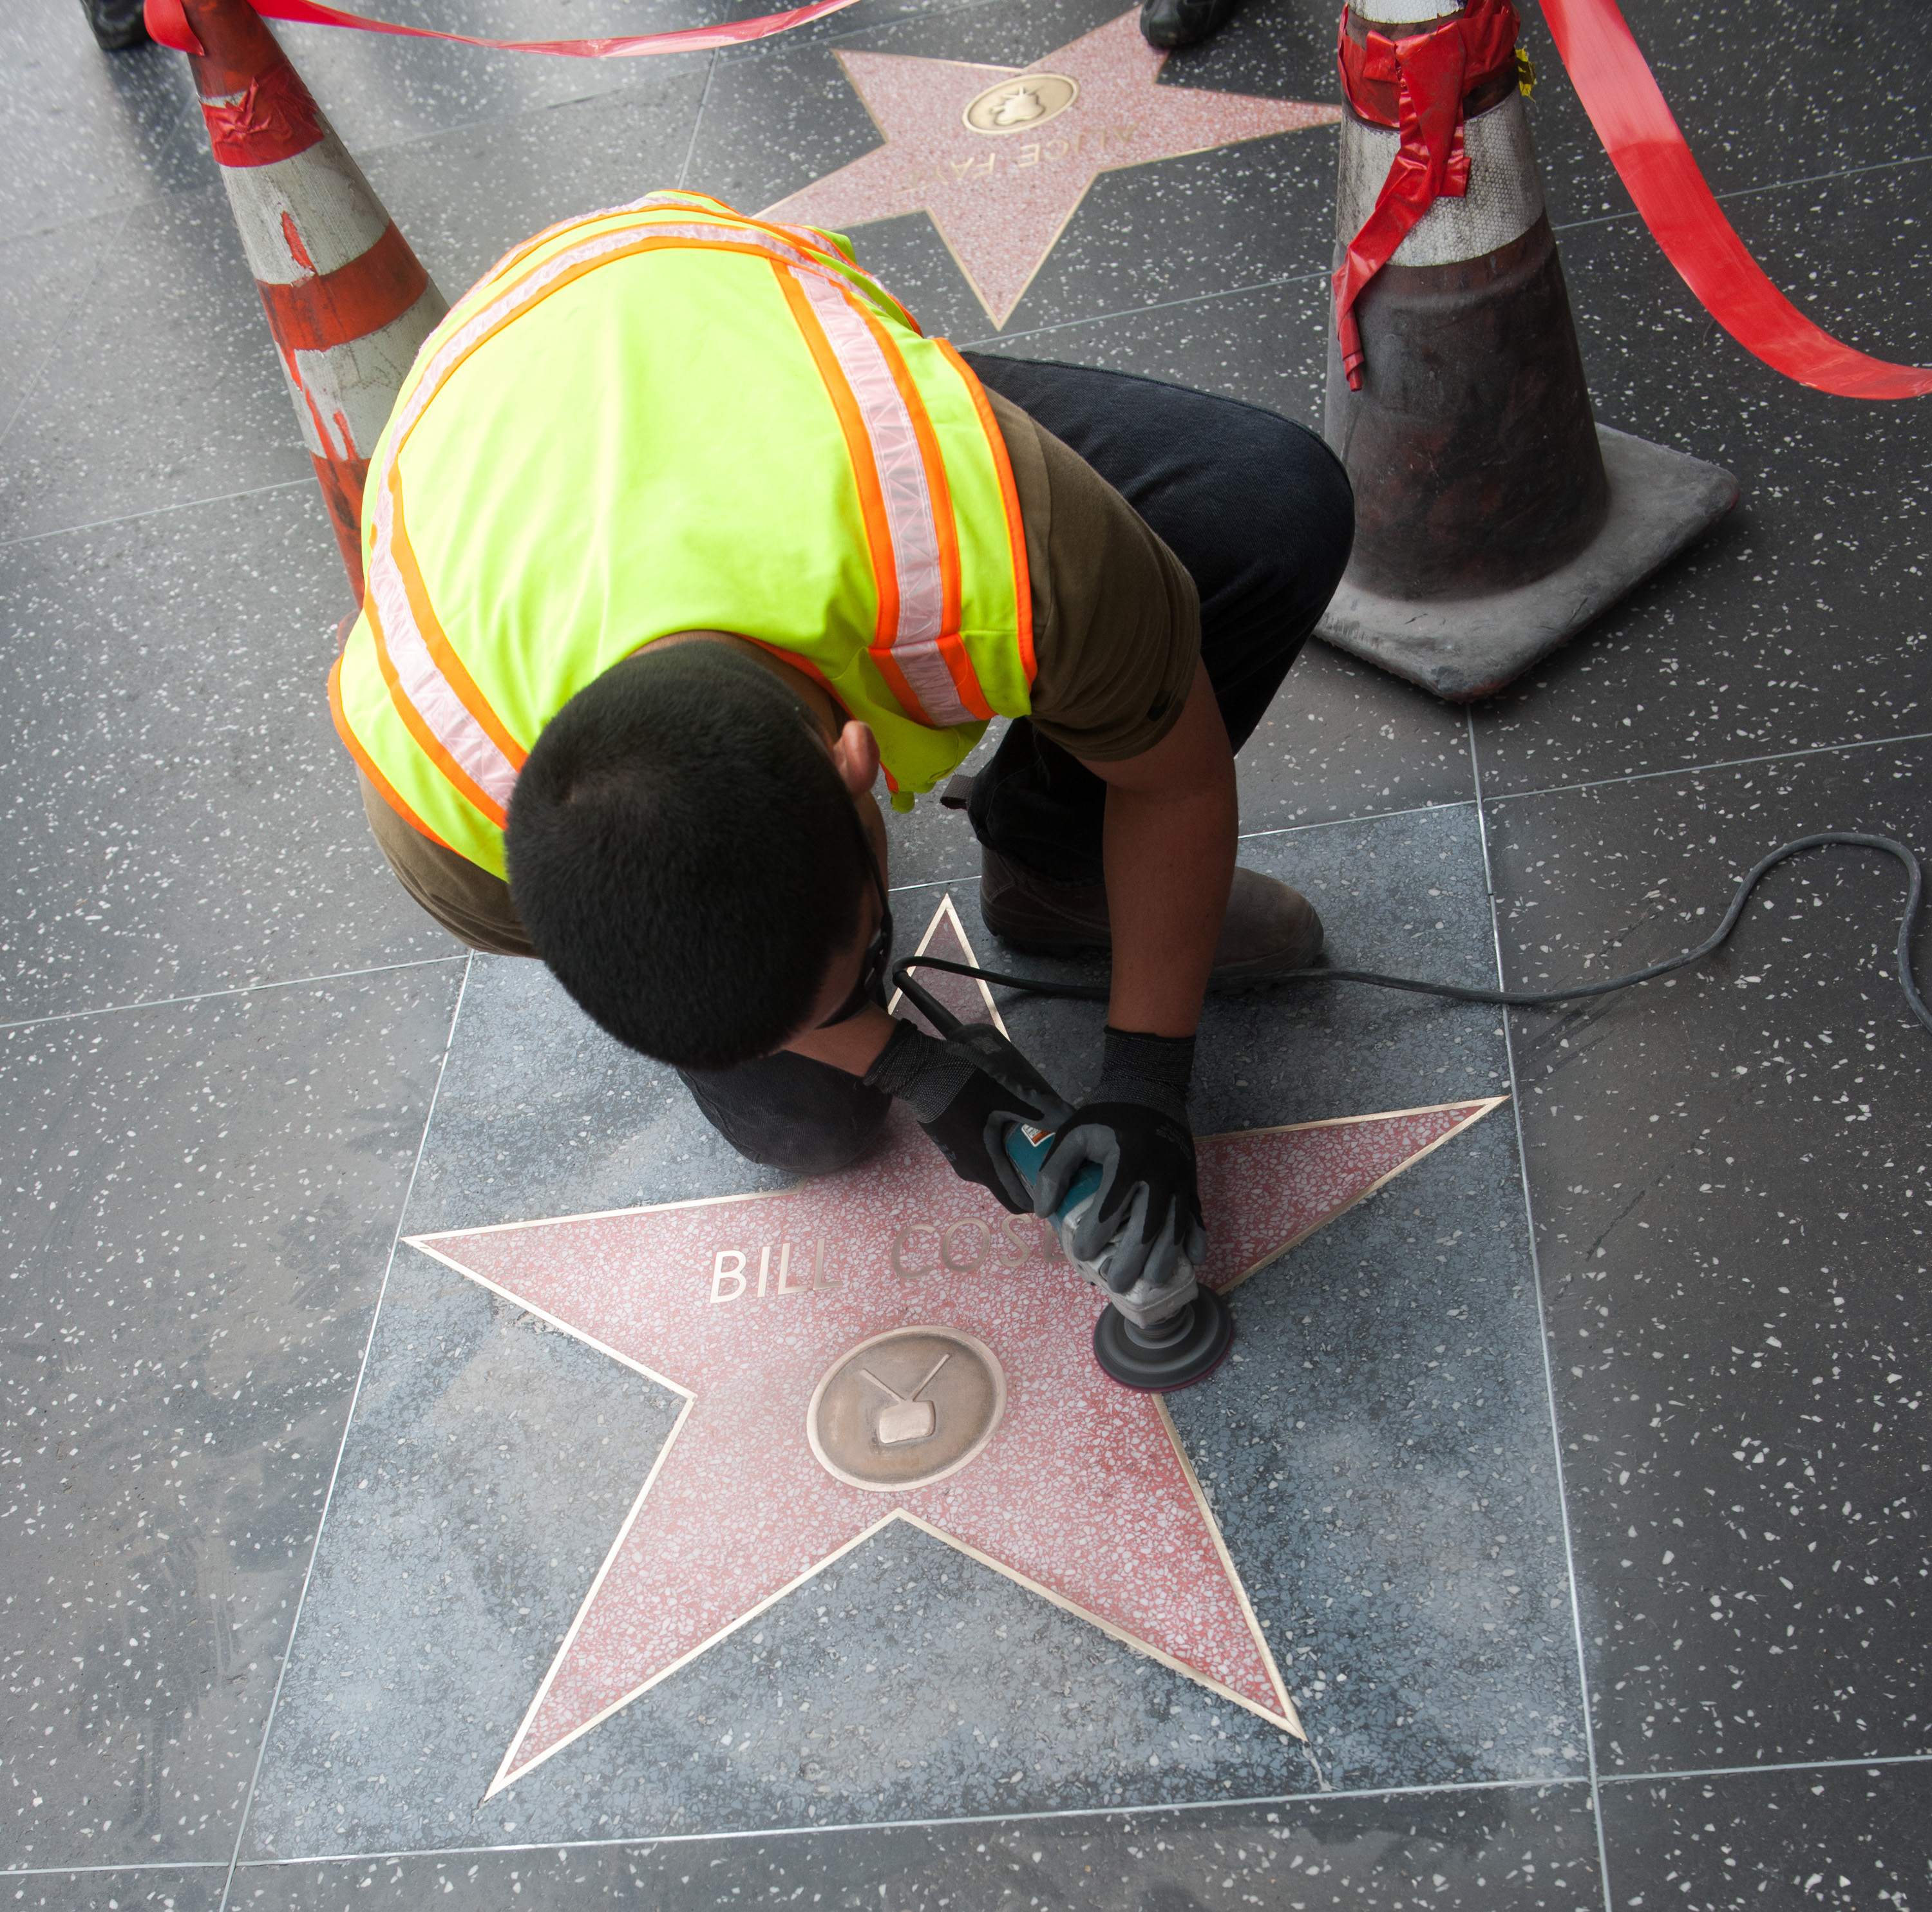 Worker working on Bill Cosyb's hollywood walk of fame star